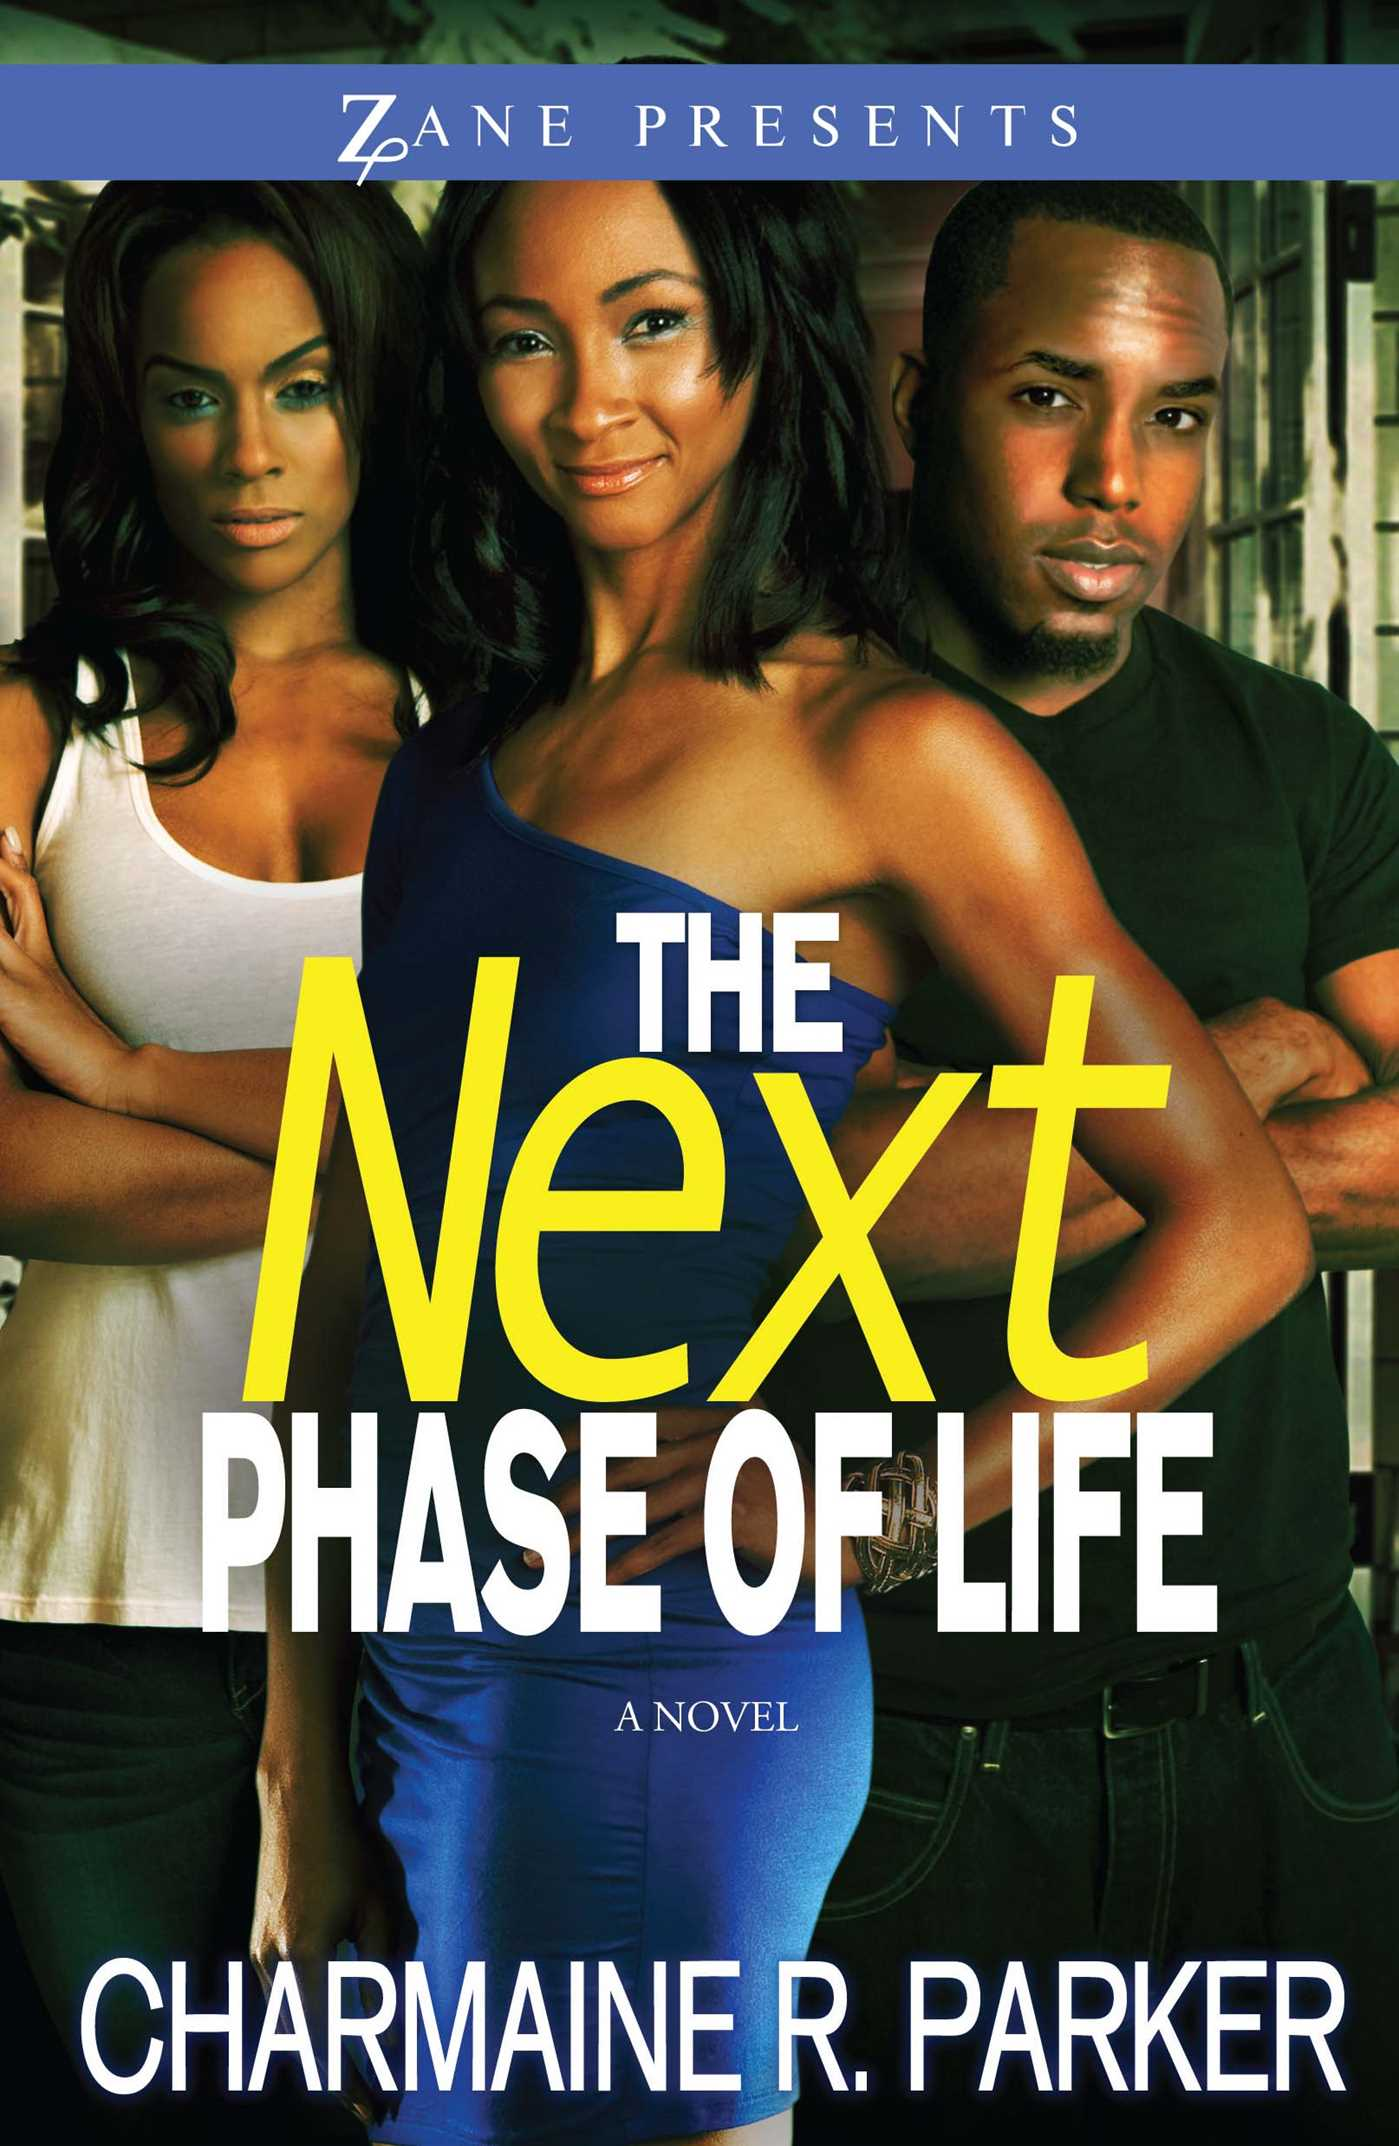 The next phase of life 9781451608069 hr